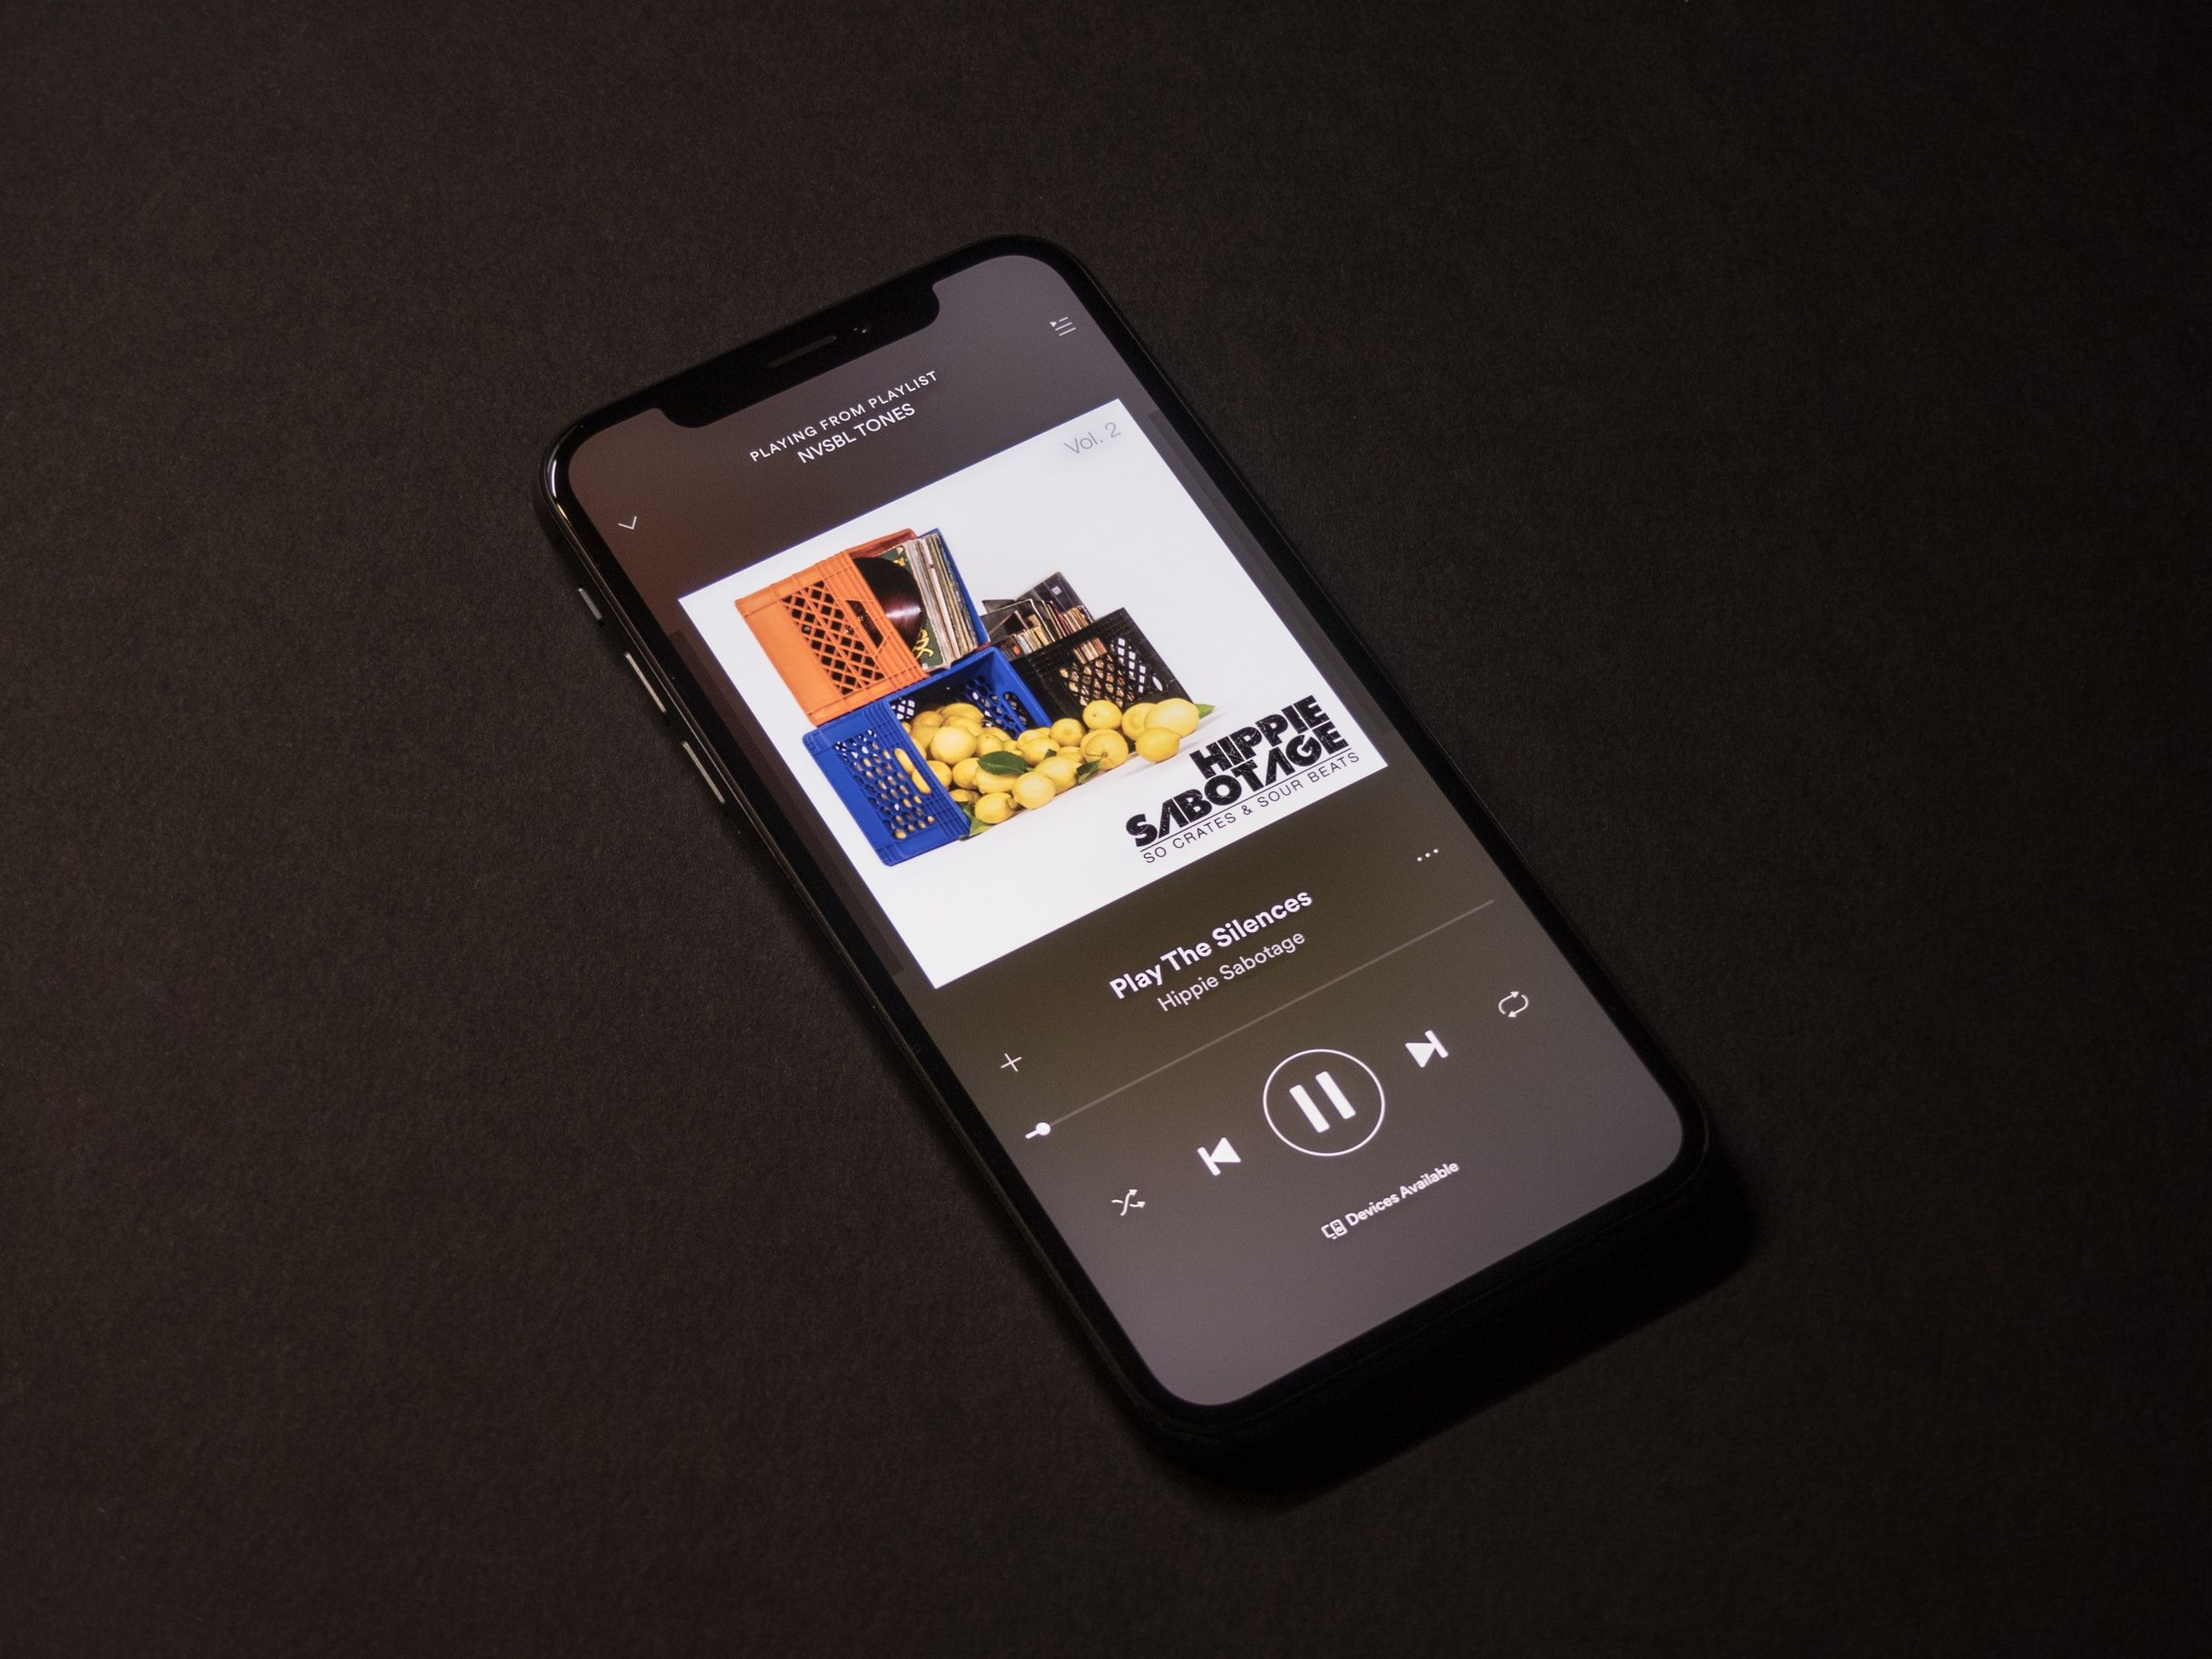 User interface of spotify music player screen in 2020